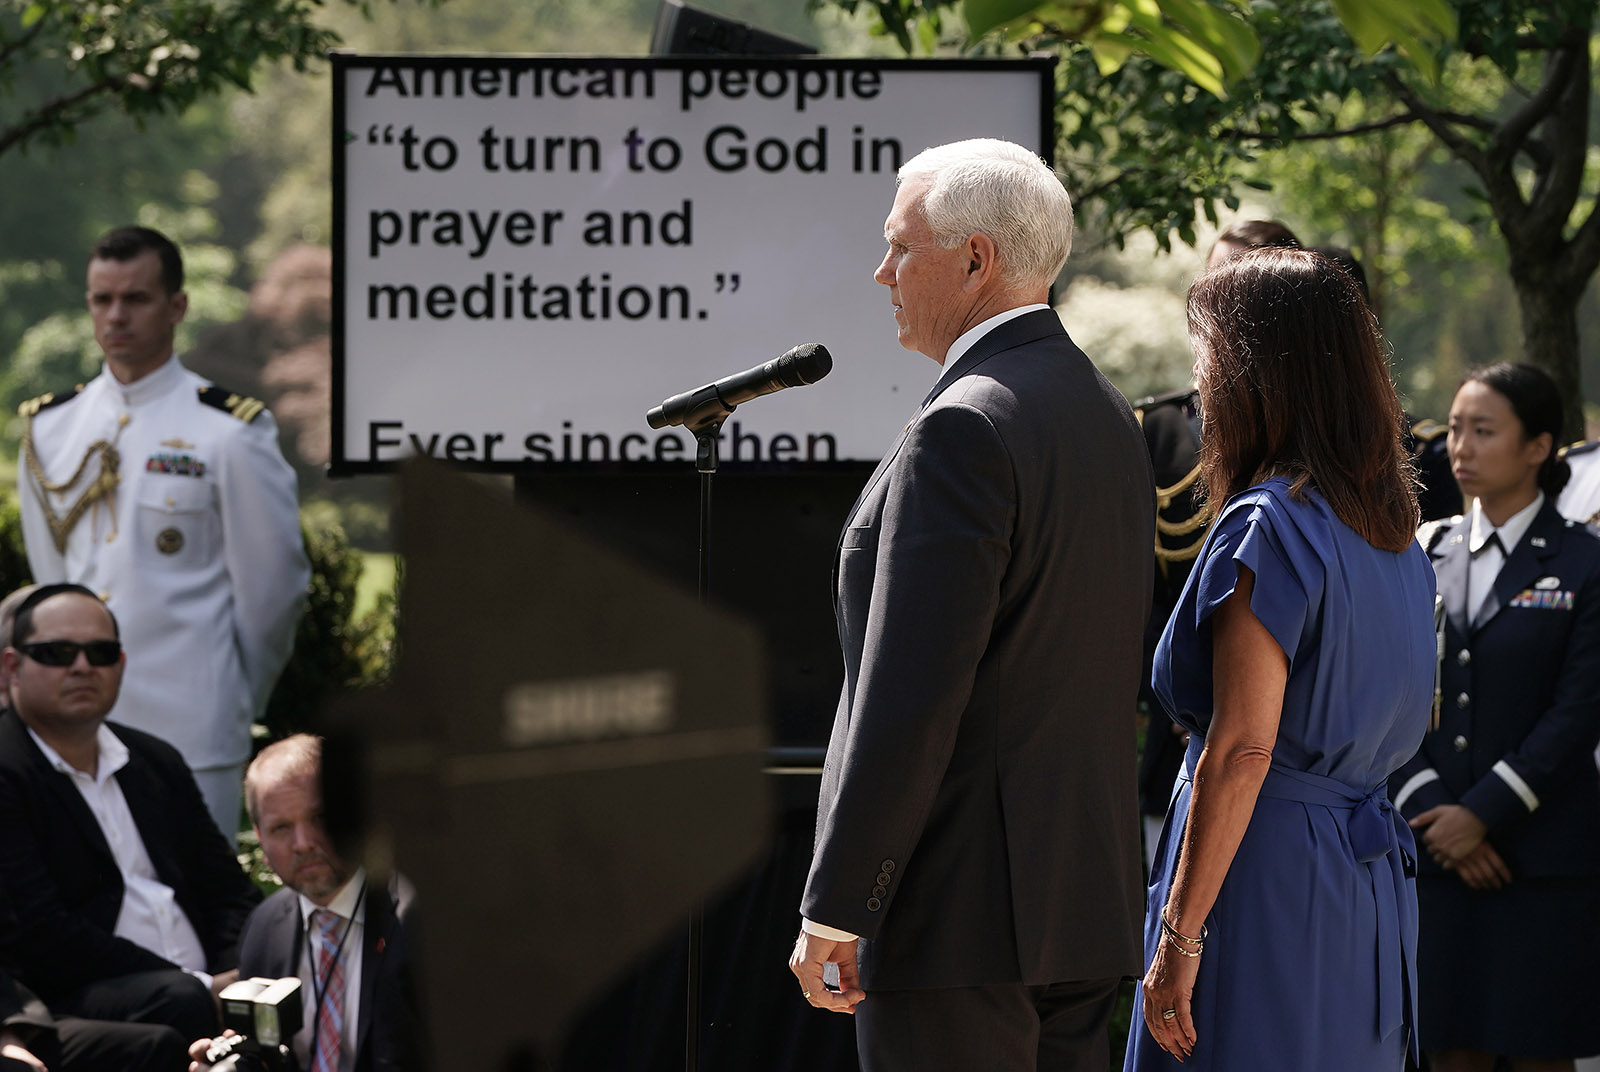 Vice President Mike Pence and Karen Pence participating in a National Day of Prayer service